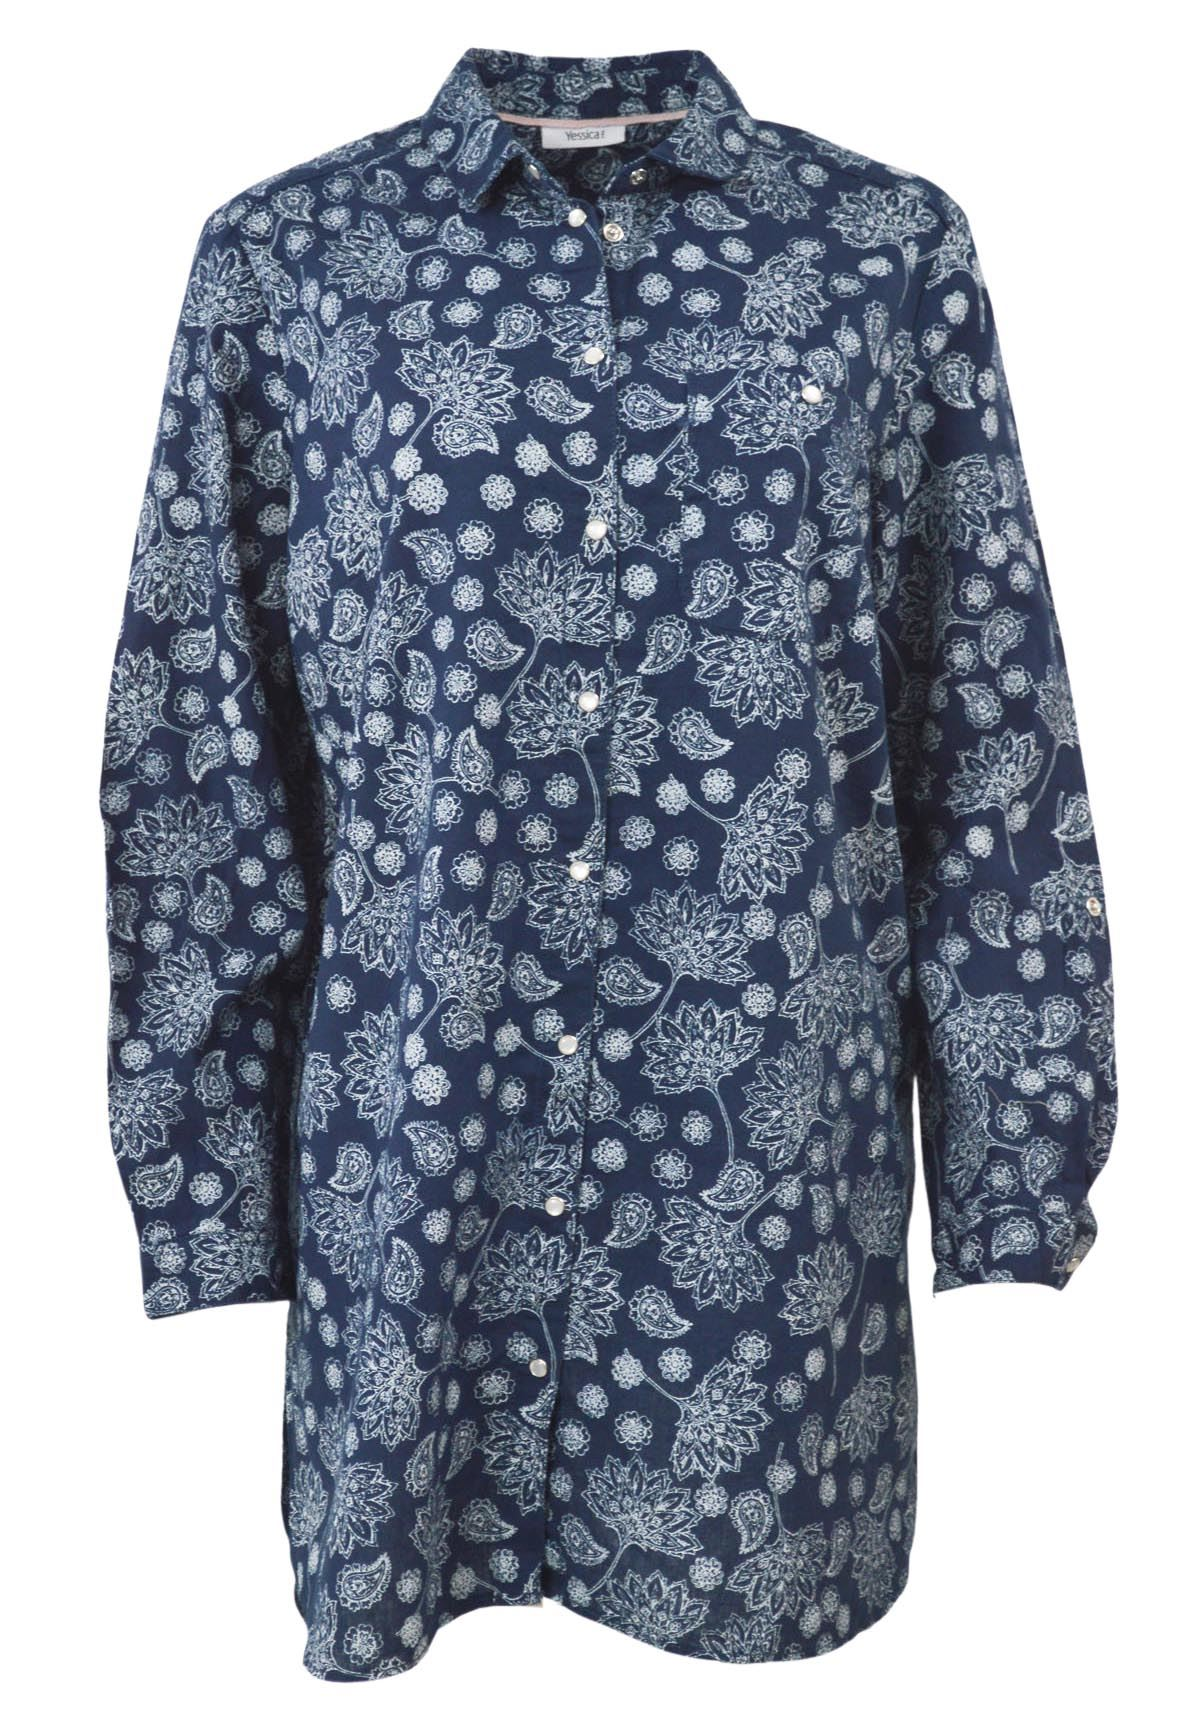 YESSICA-Womens-Ivory-Navy-Floral-Linen-Cotton-Long-Sleeve-Shirt-RRP-28 thumbnail 11